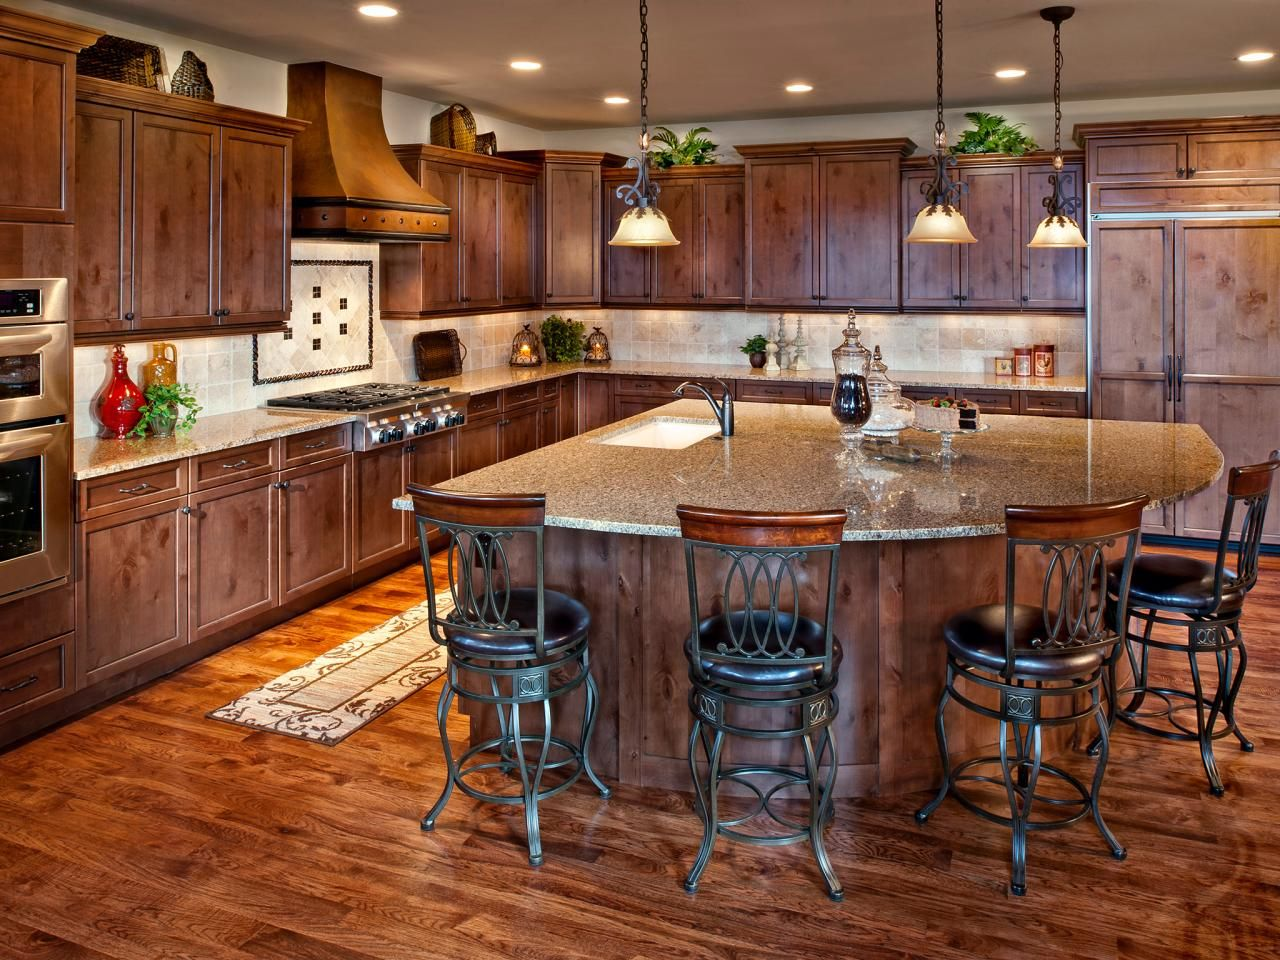 Beautiful Pictures Of Kitchen Islands Hgtv S Favorite Design Ideas With Cabinets Backsplashes